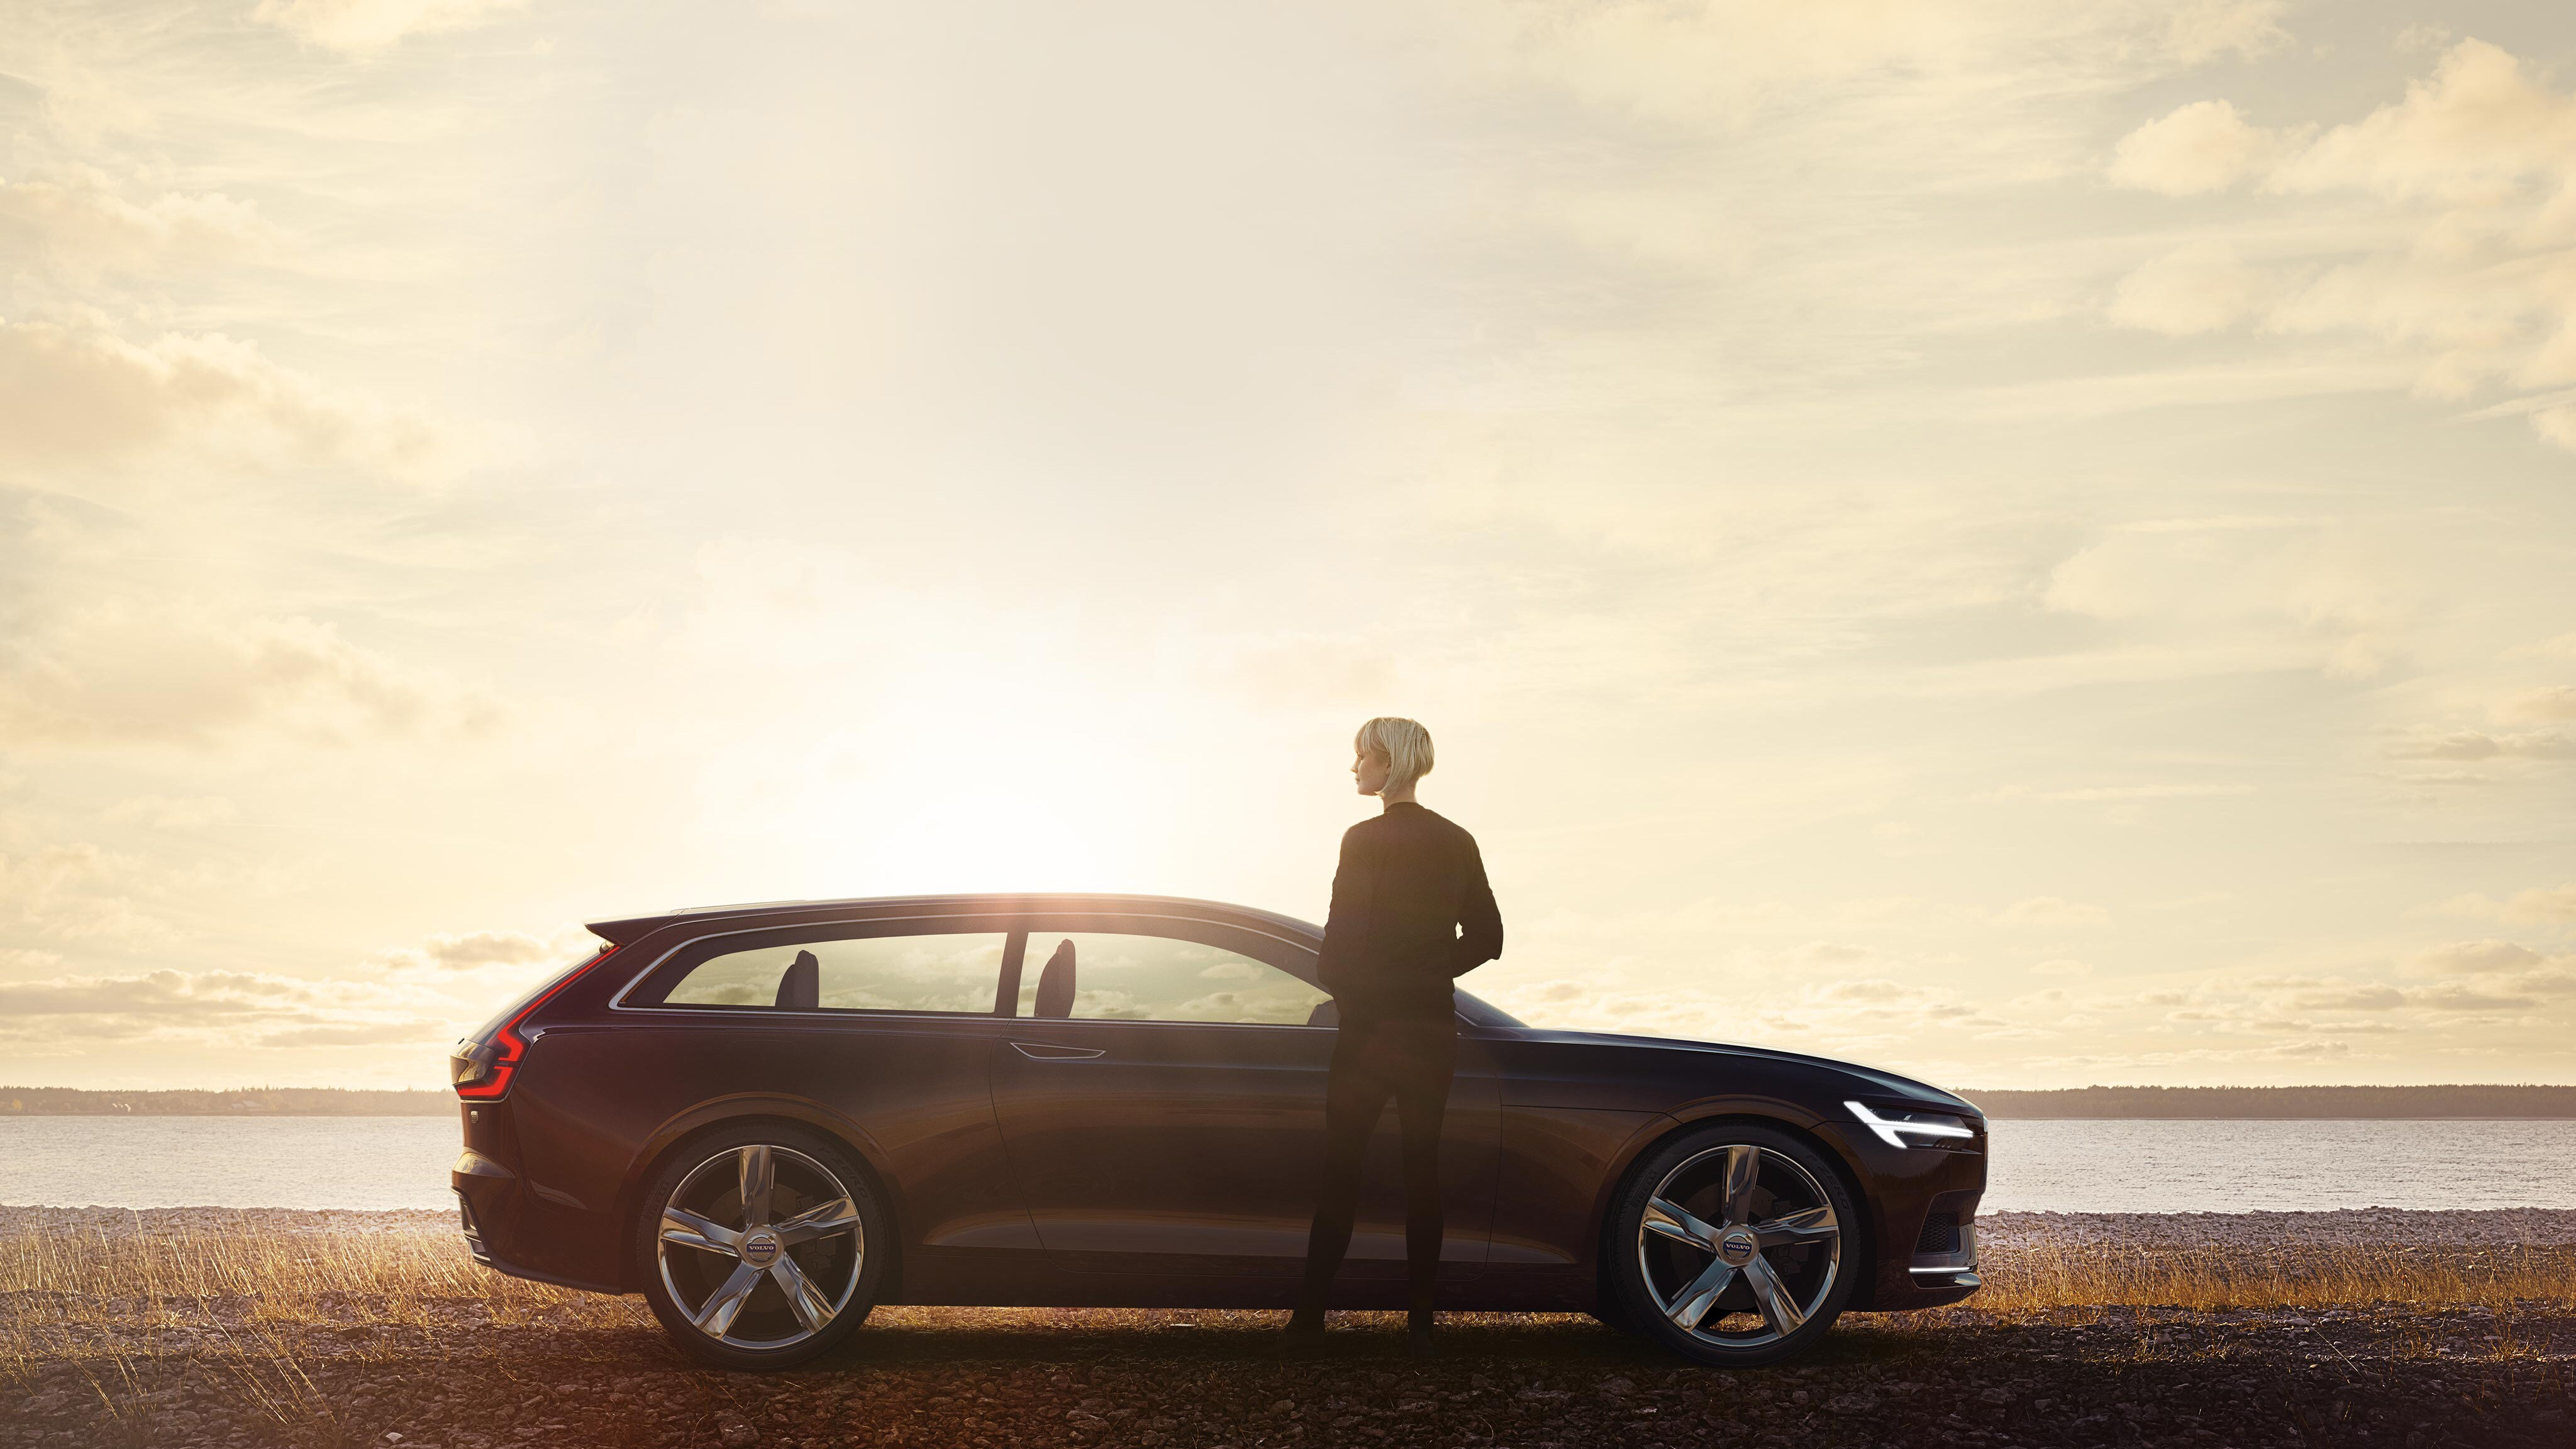 Volvo Concept Car coupe